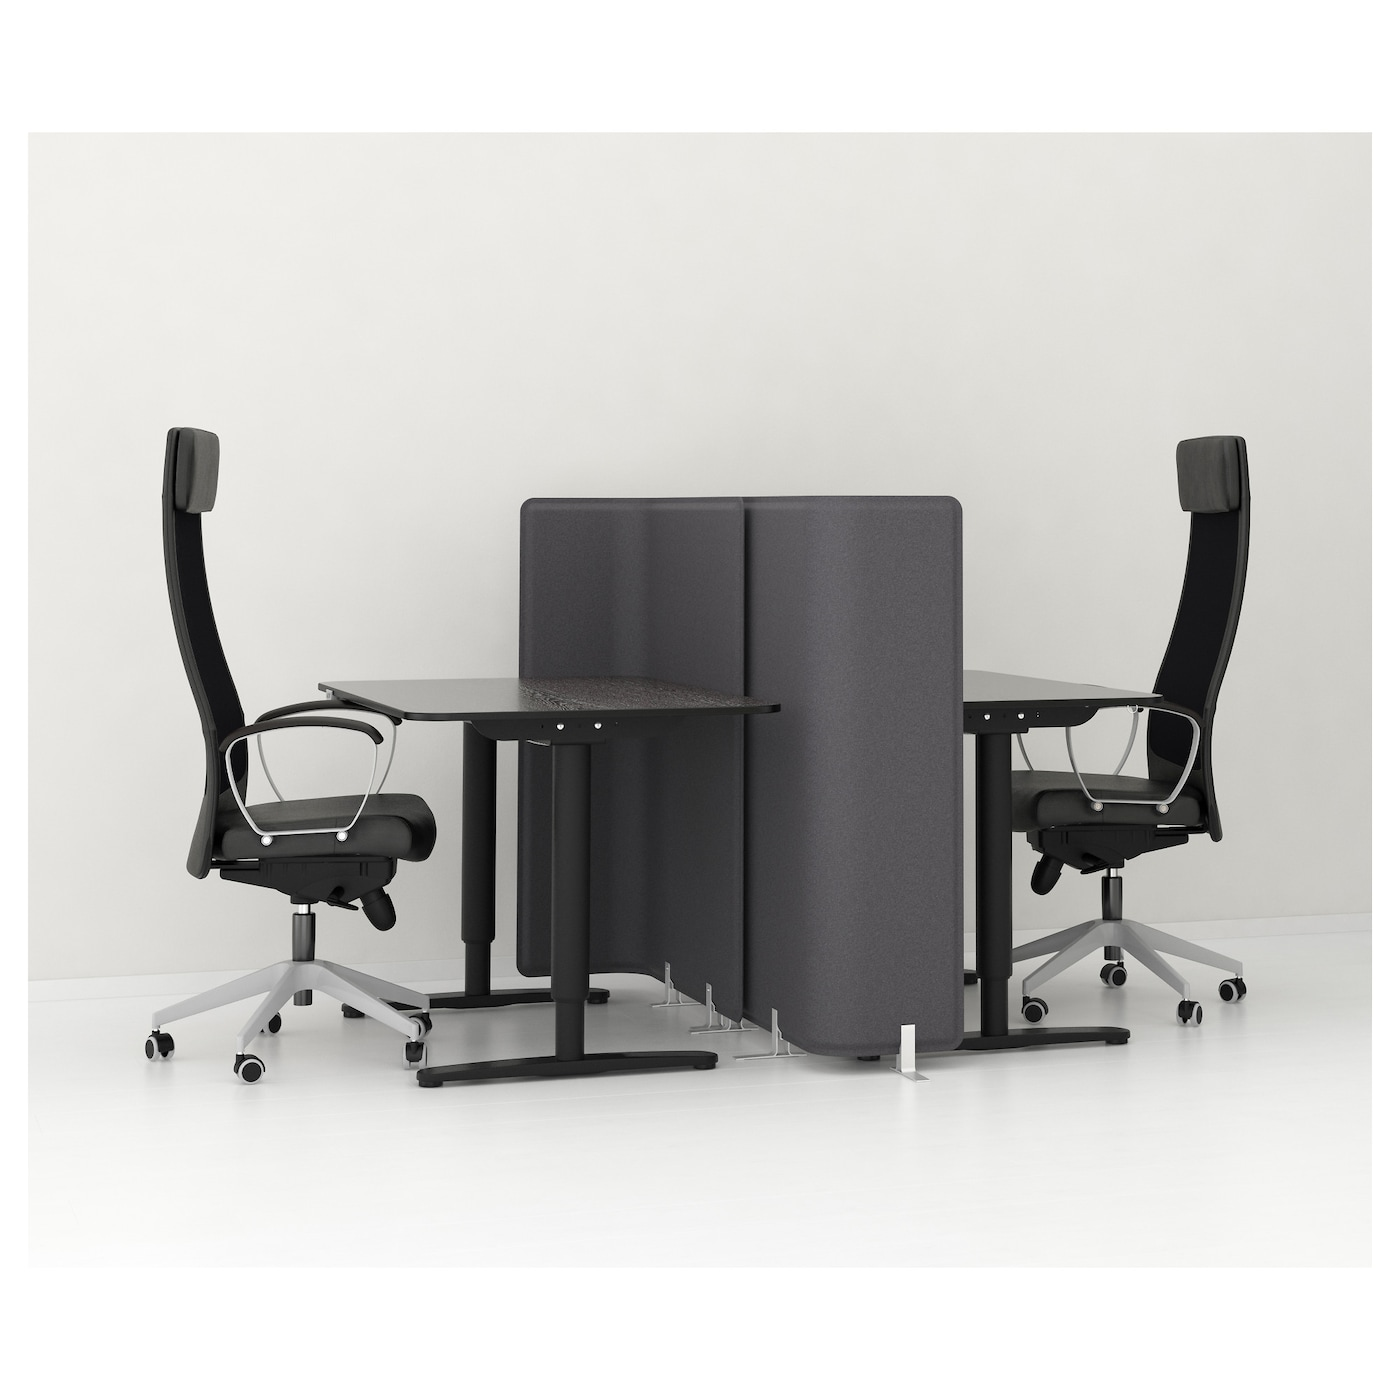 bekant black year desk guarantee read products spr en brown stand gb sit desks in office the about ikea terms cm